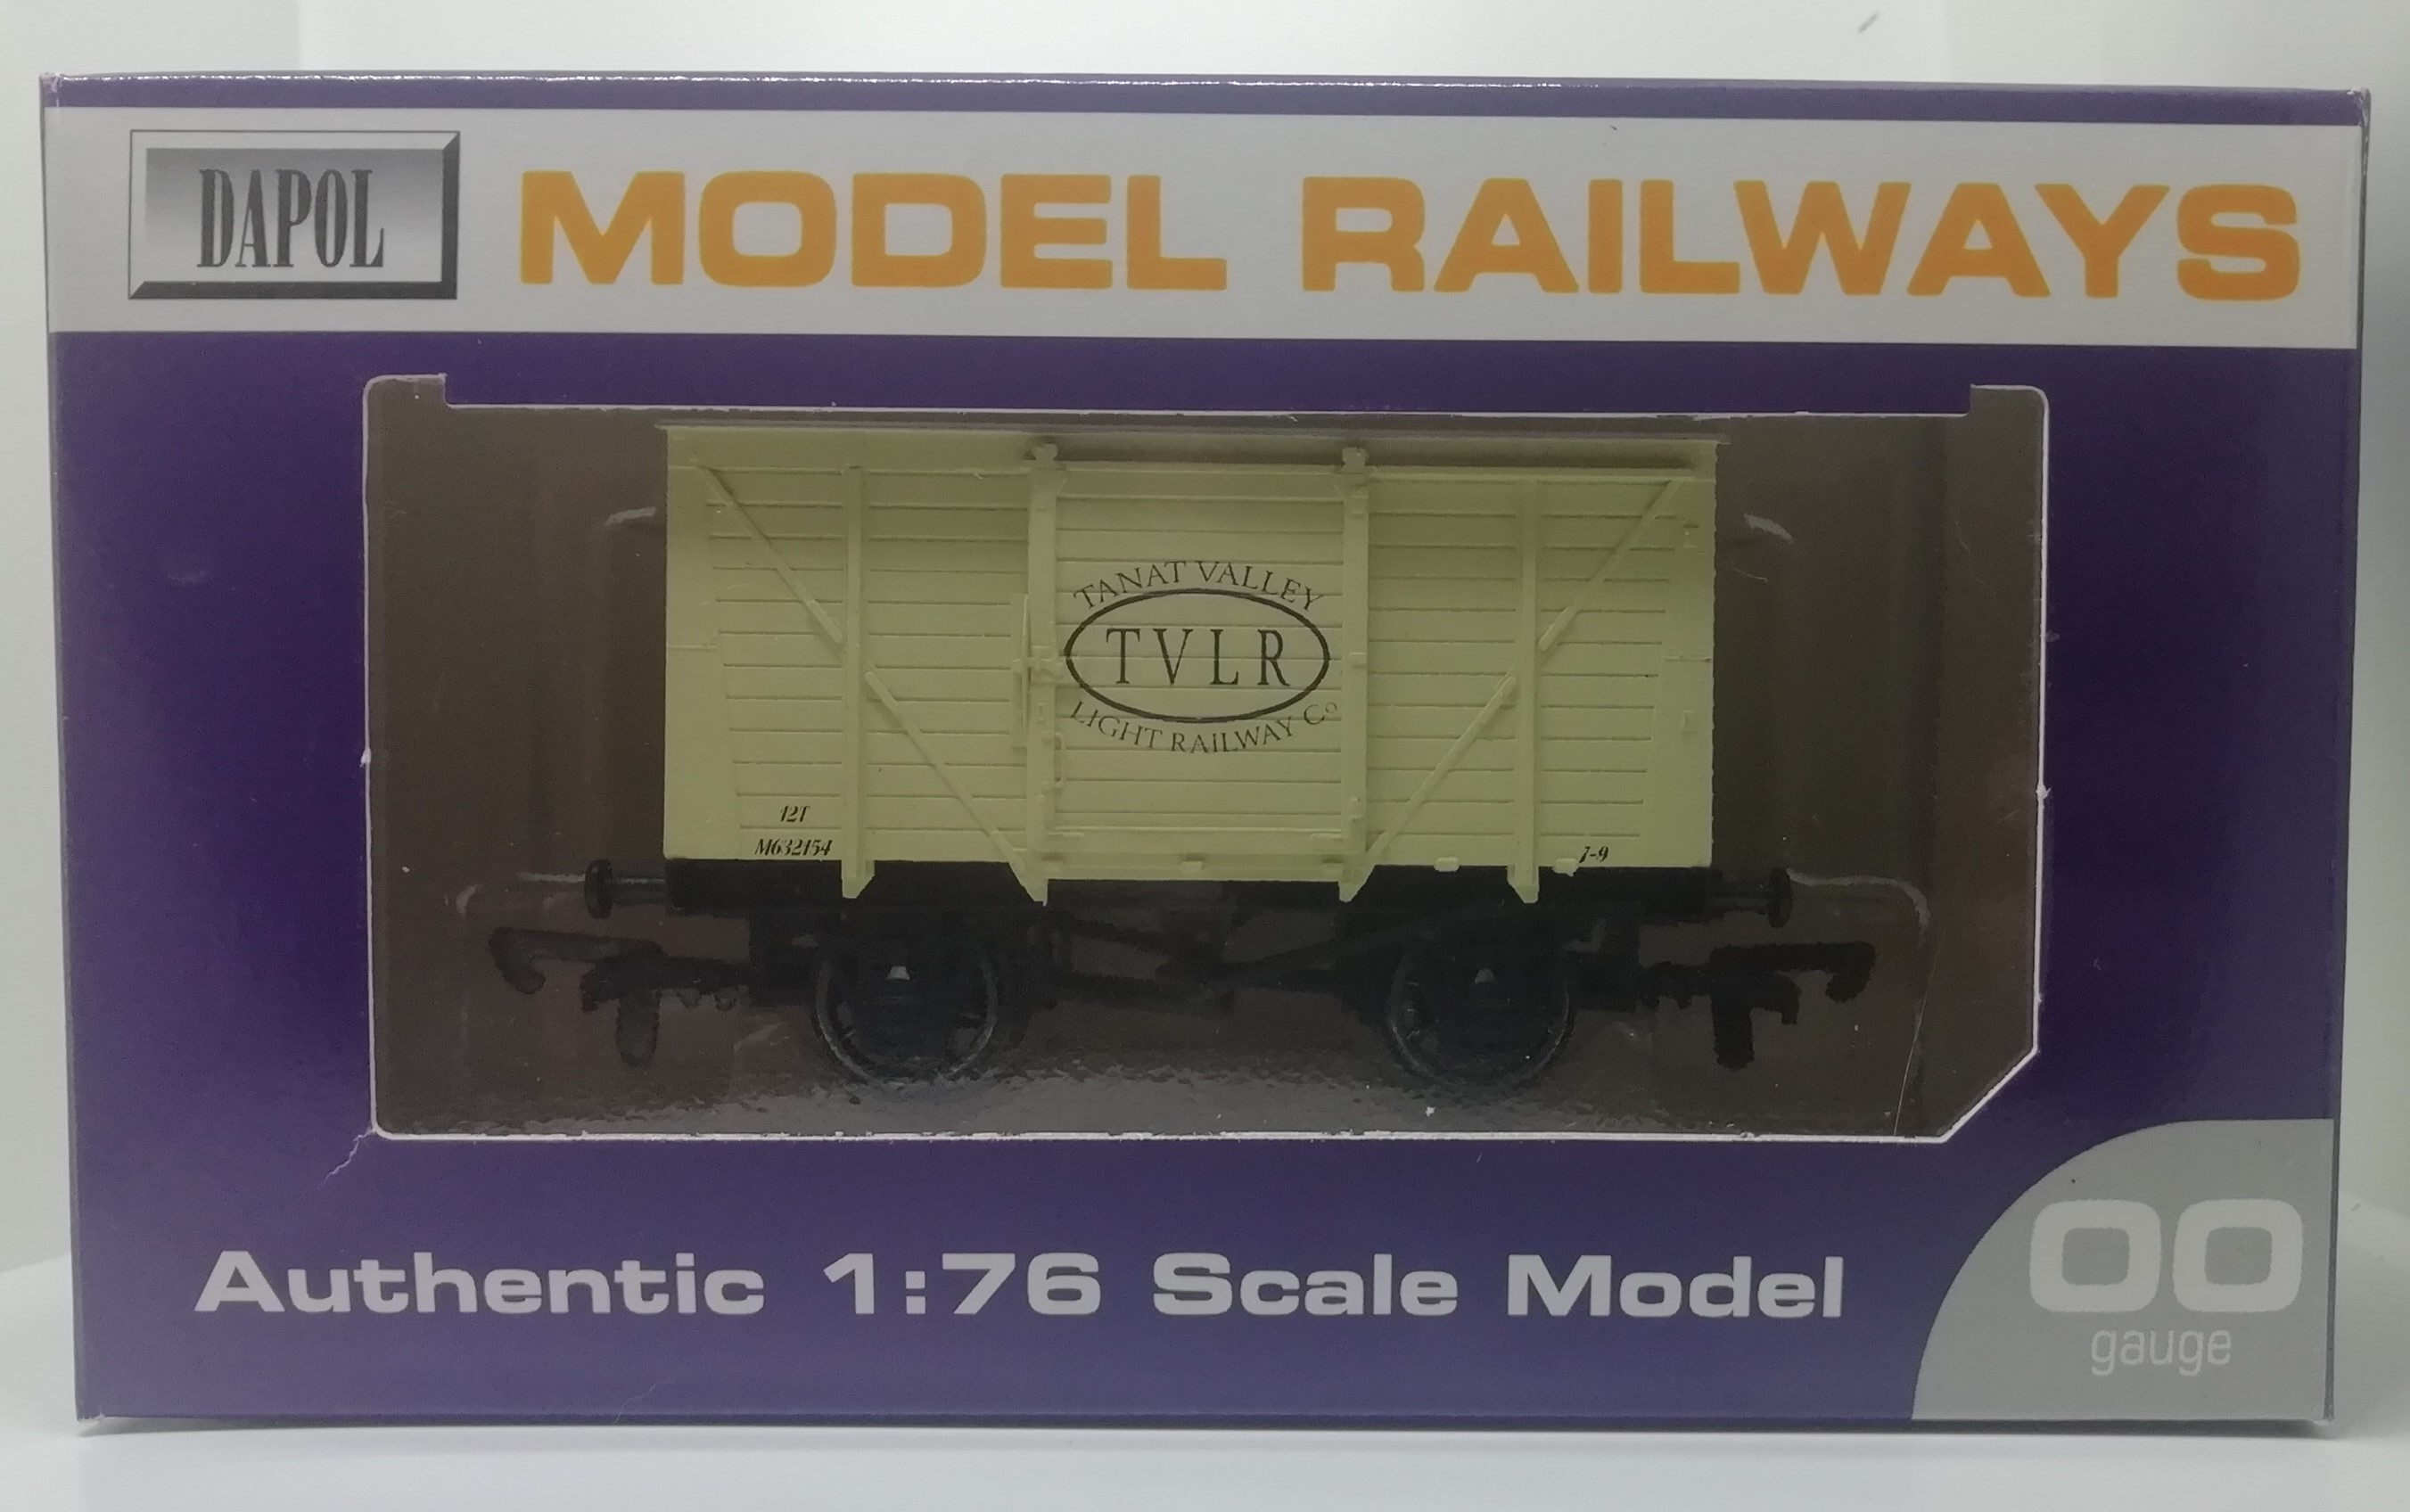 20ft Box Van with TVLR Logo - 1:76 Scale Model / 00 Gauge